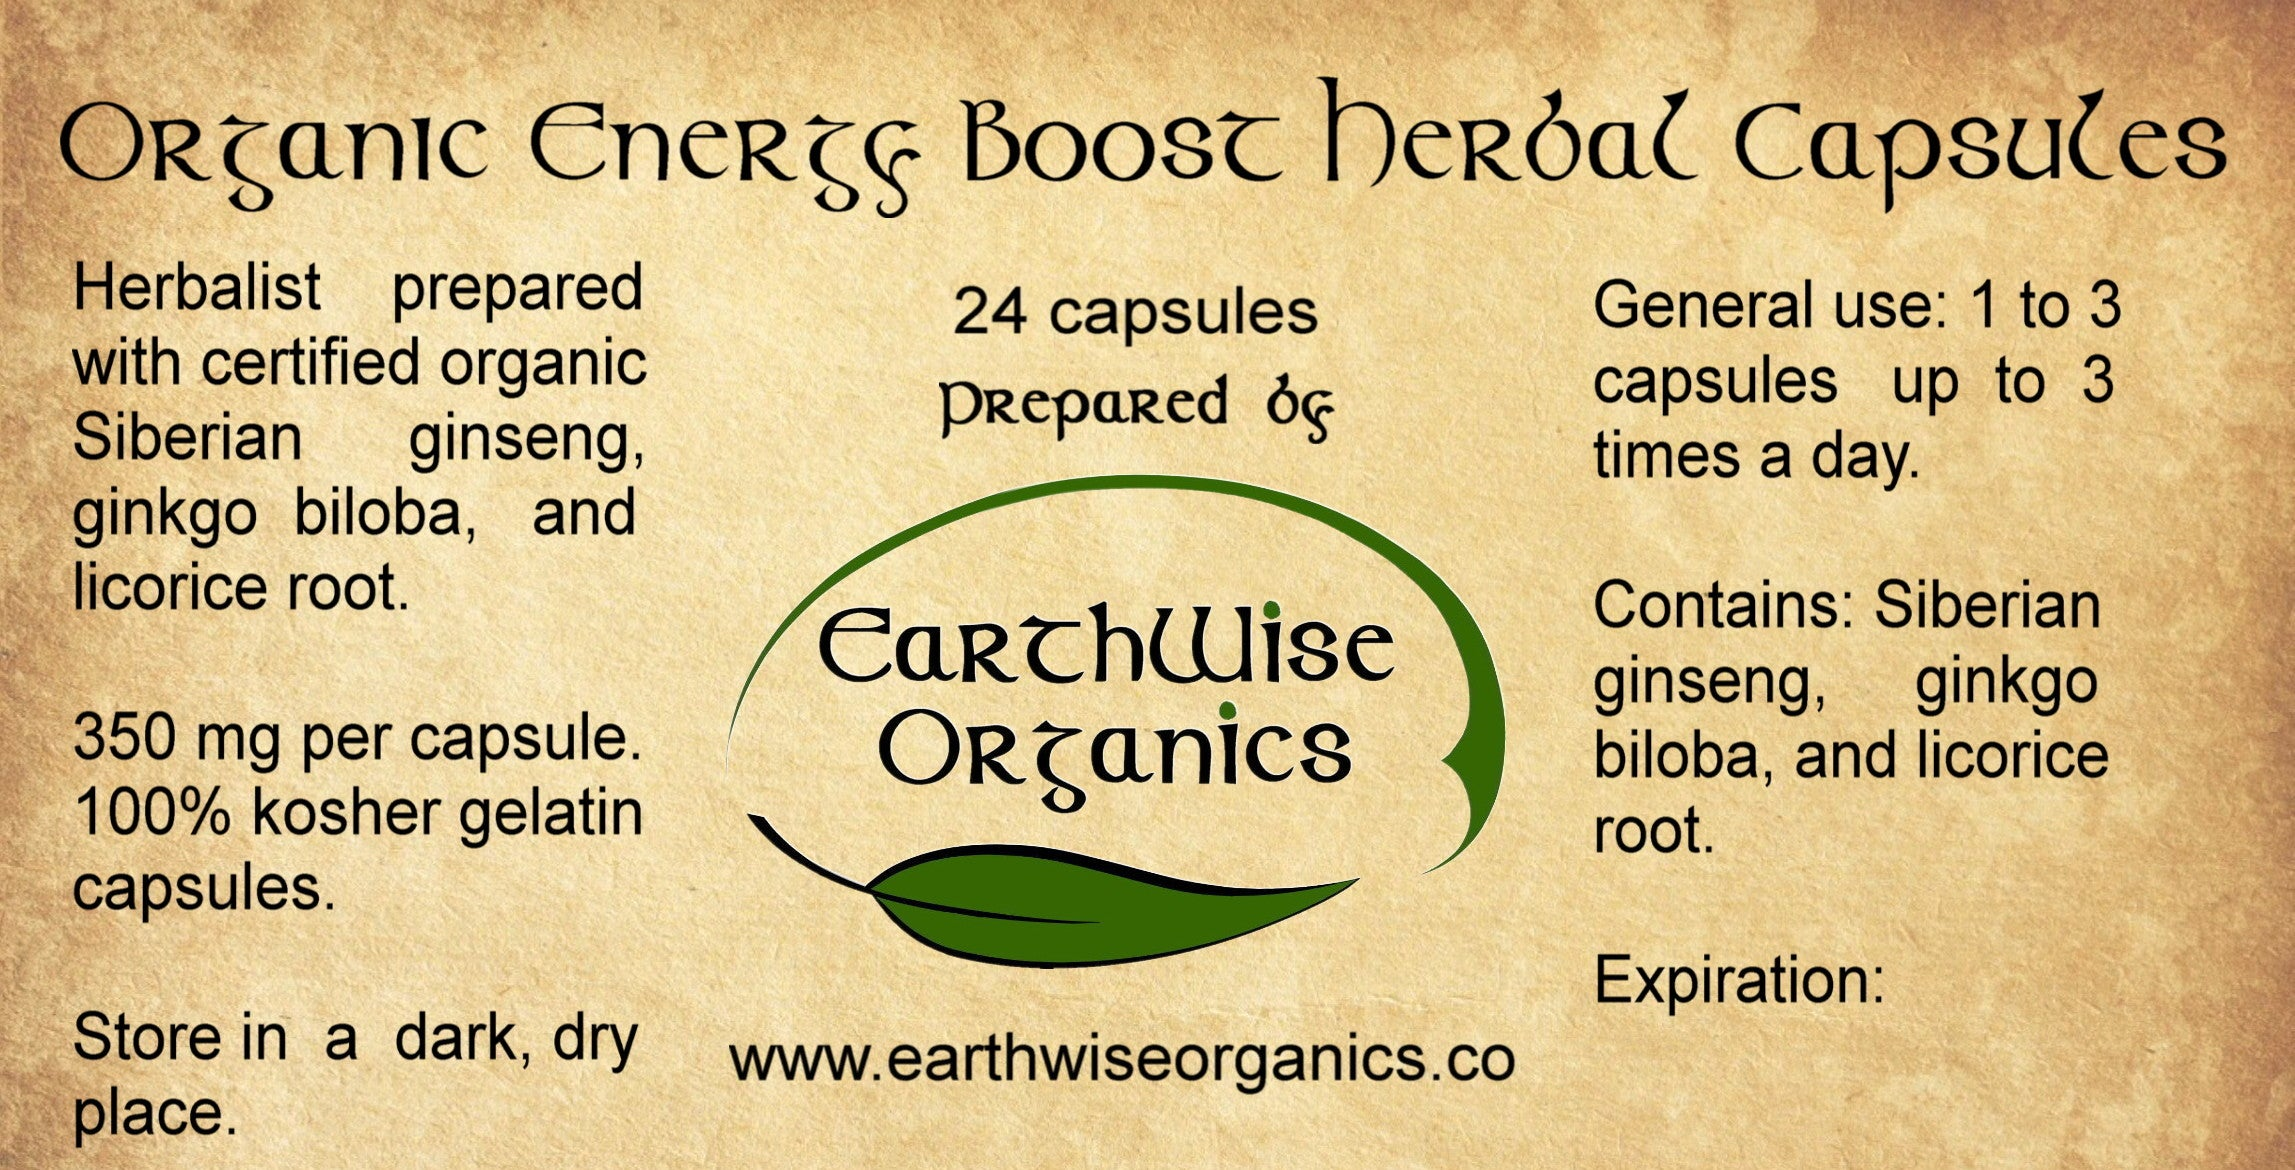 energy boost organic herbal capsules label